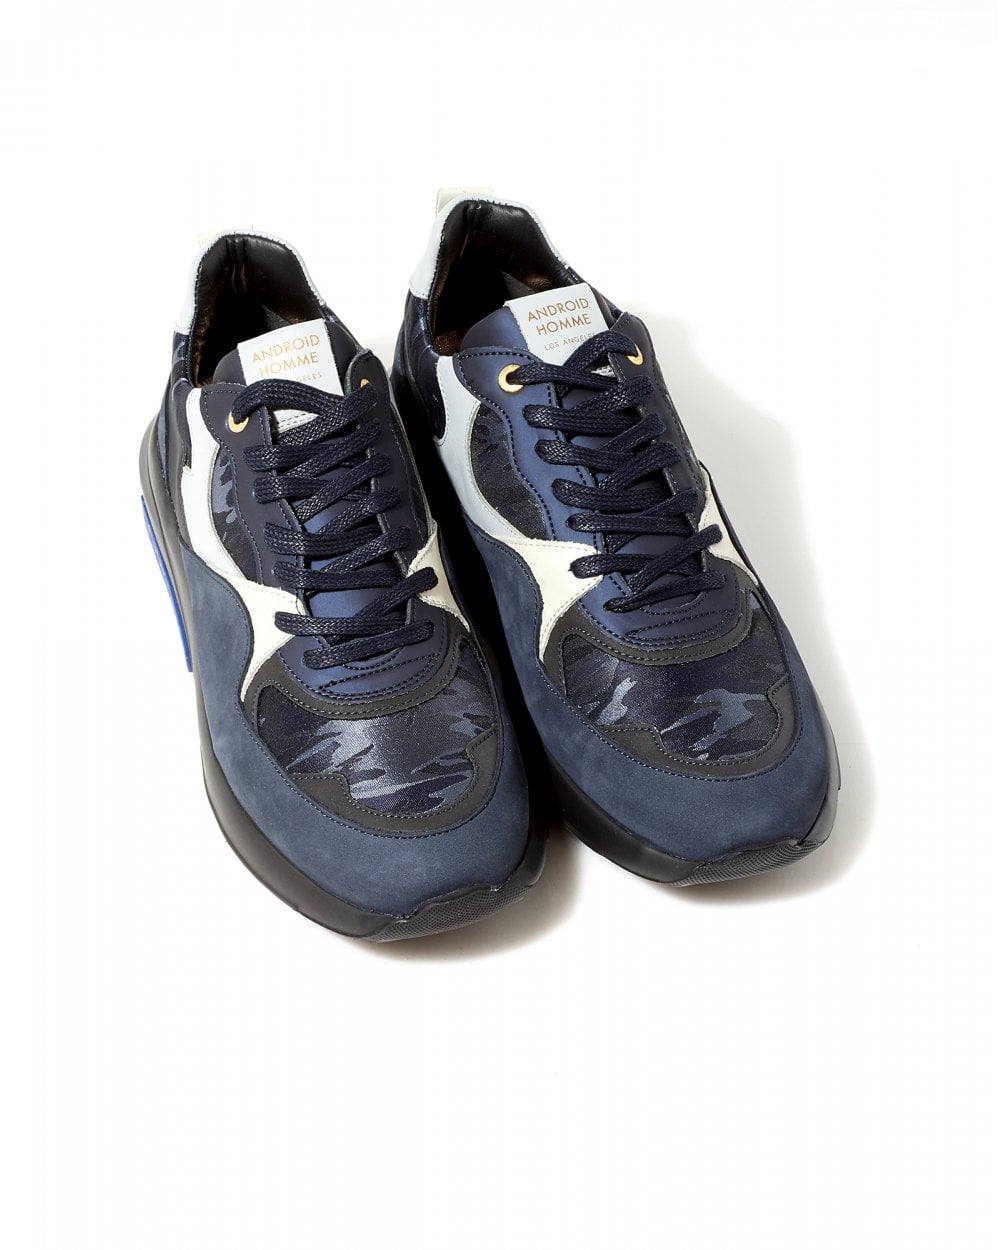 65233d934128 Android Homme Mens Sky Metallic Camouflage Malibu Runner Sneakers